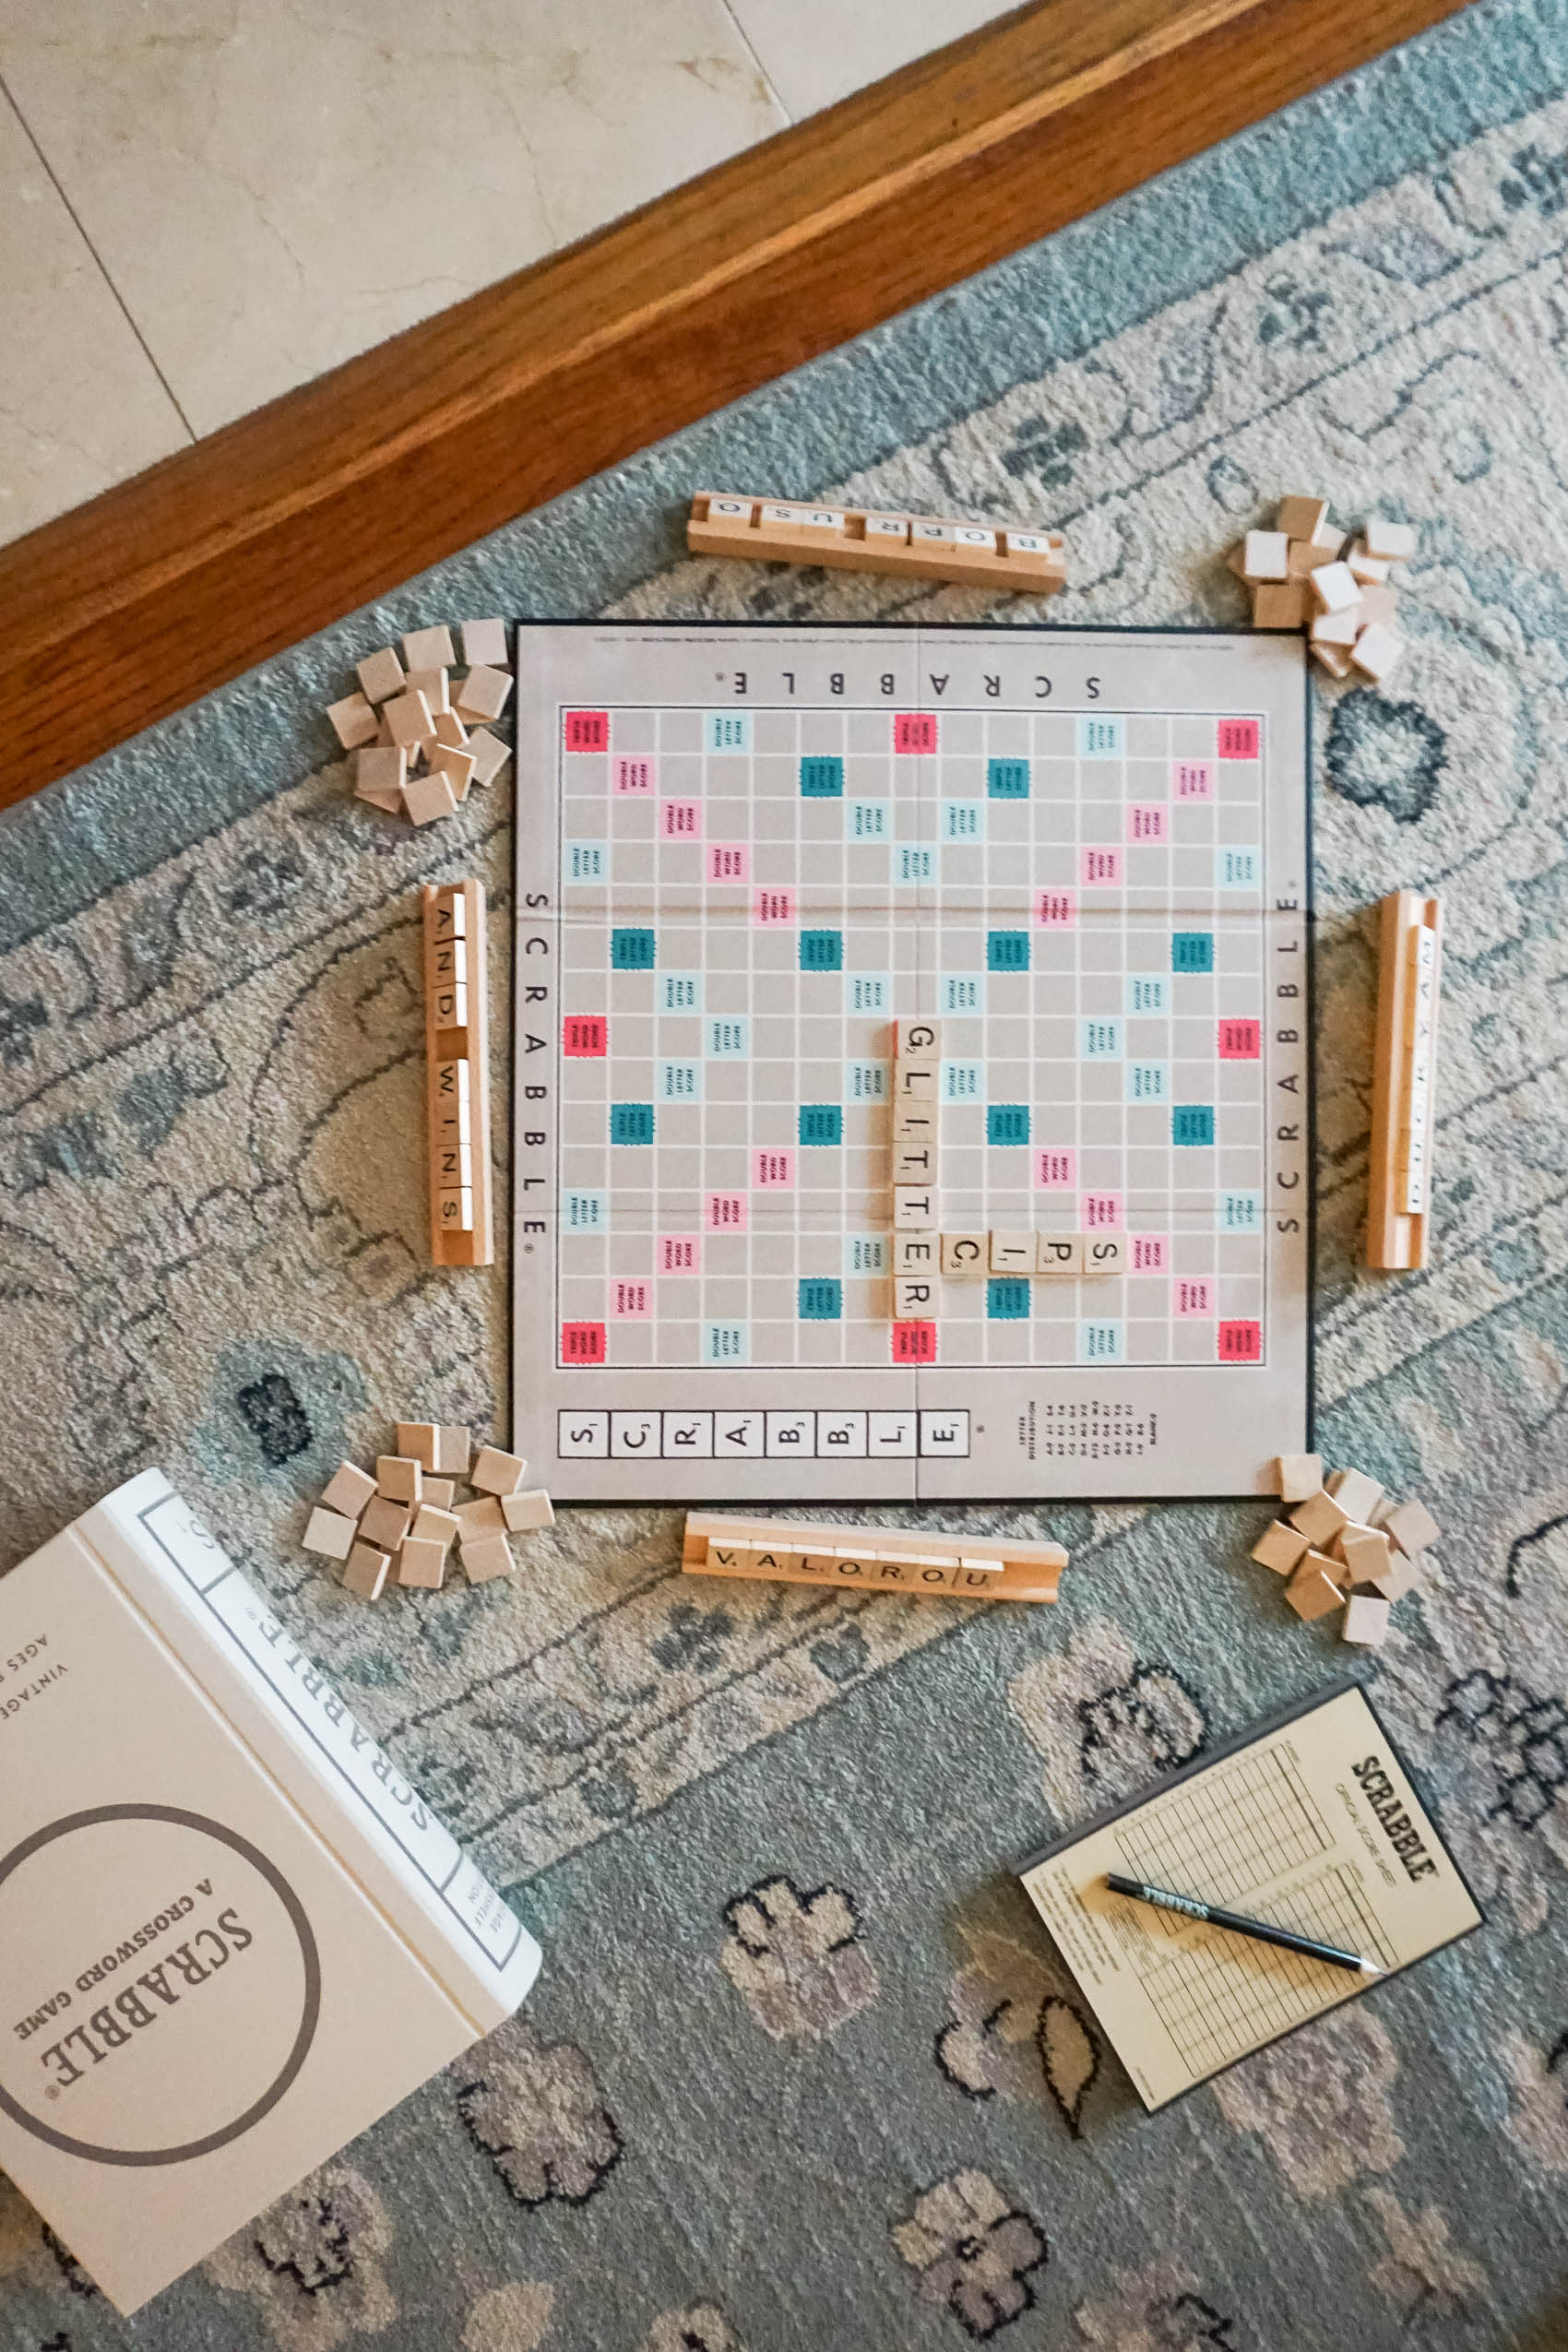 Scrabble is one of the best games for a game night with family